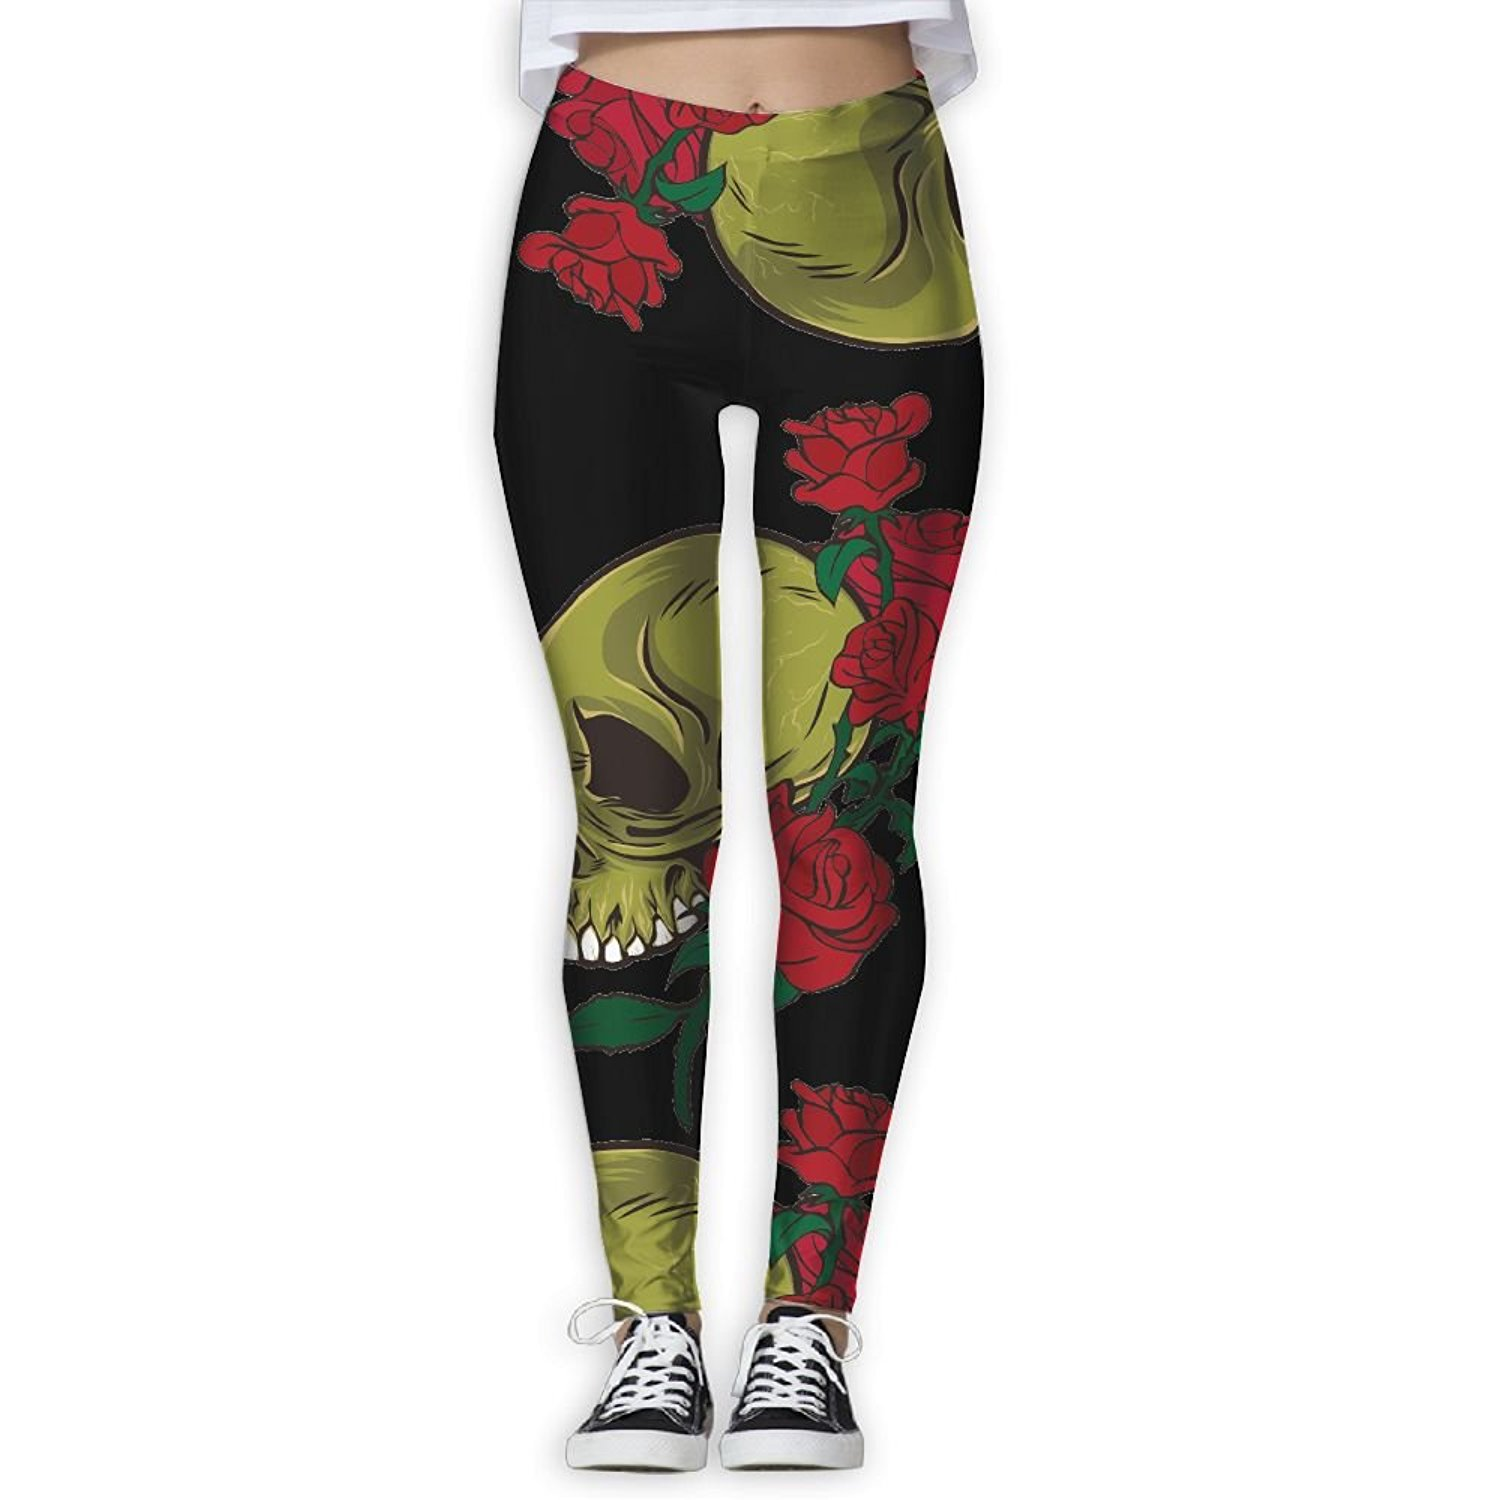 43f2589003fdd Get Quotations · DF4s Pants Flower Skull Women Printed Athletic Yoga Pants  Exercise Athletic Pants Fashion High Waisted Yoga